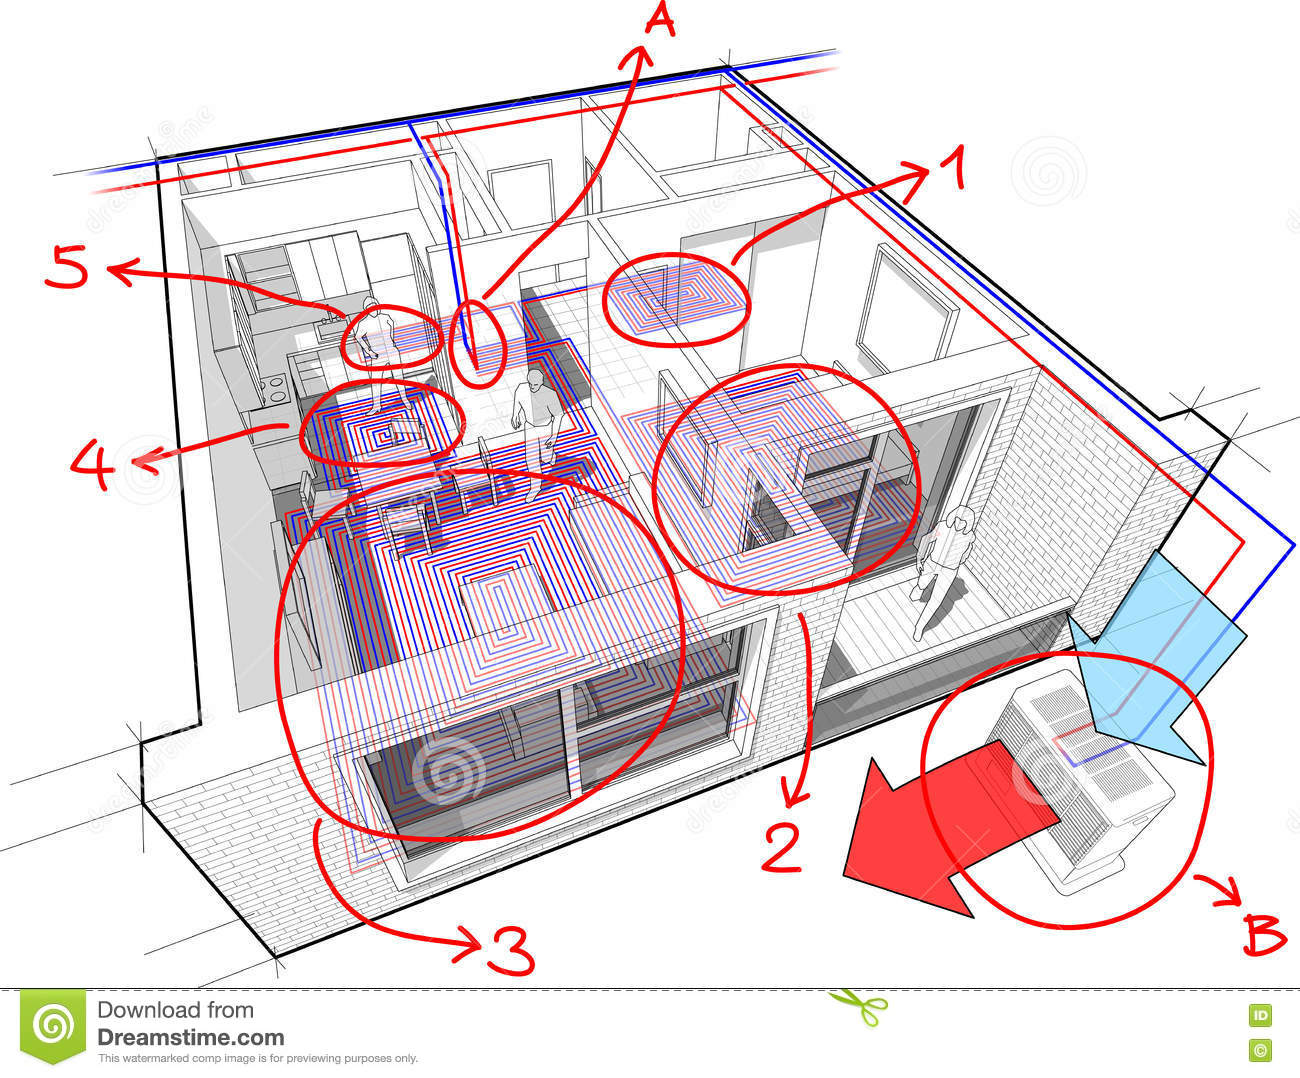 hight resolution of apartment diagram with underfloor heating and heat pump and hand drawn notes